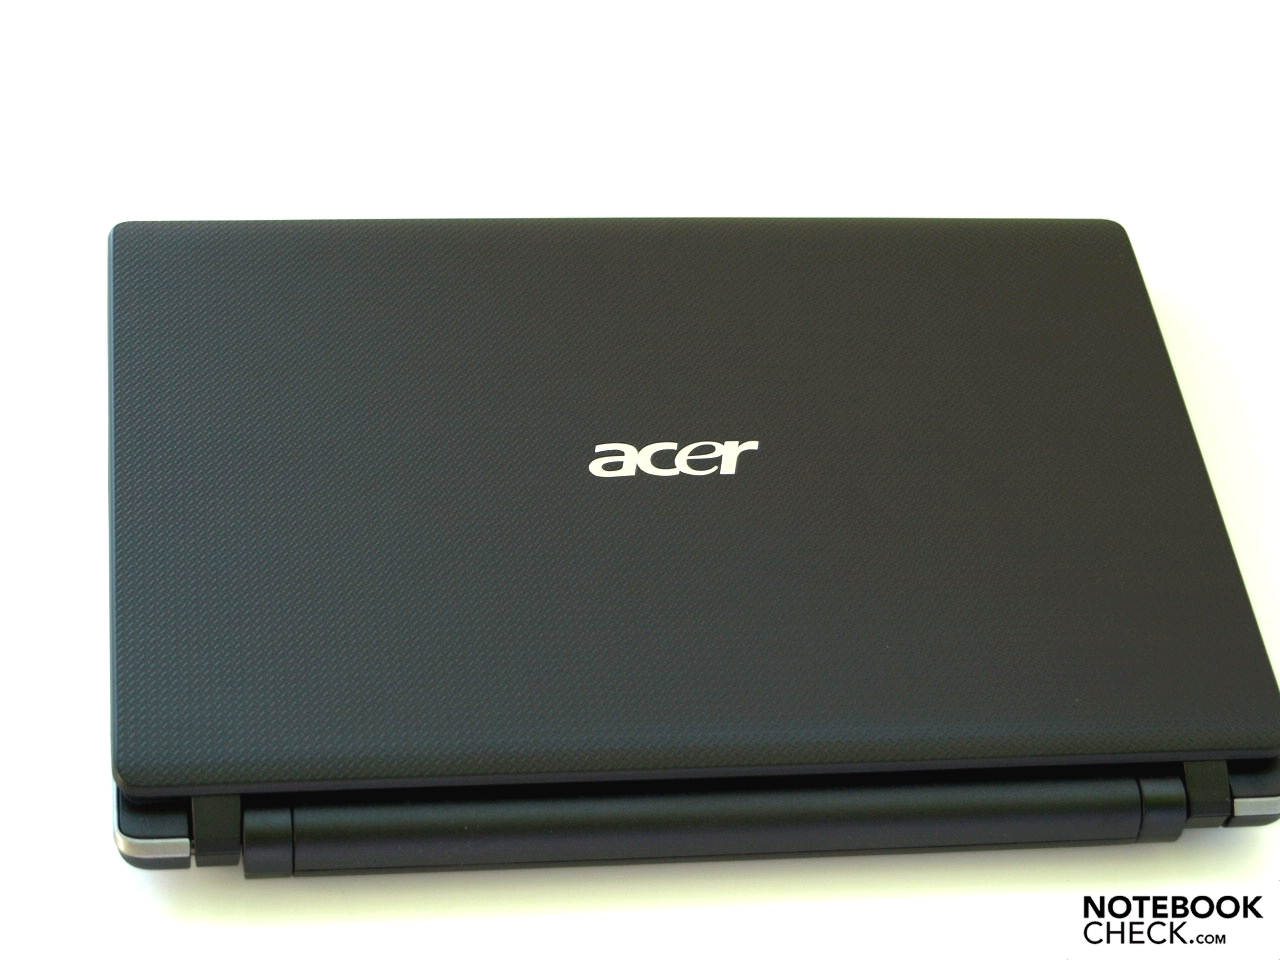 Acer AO721 Netbook Atheros Bluetooth Download Driver